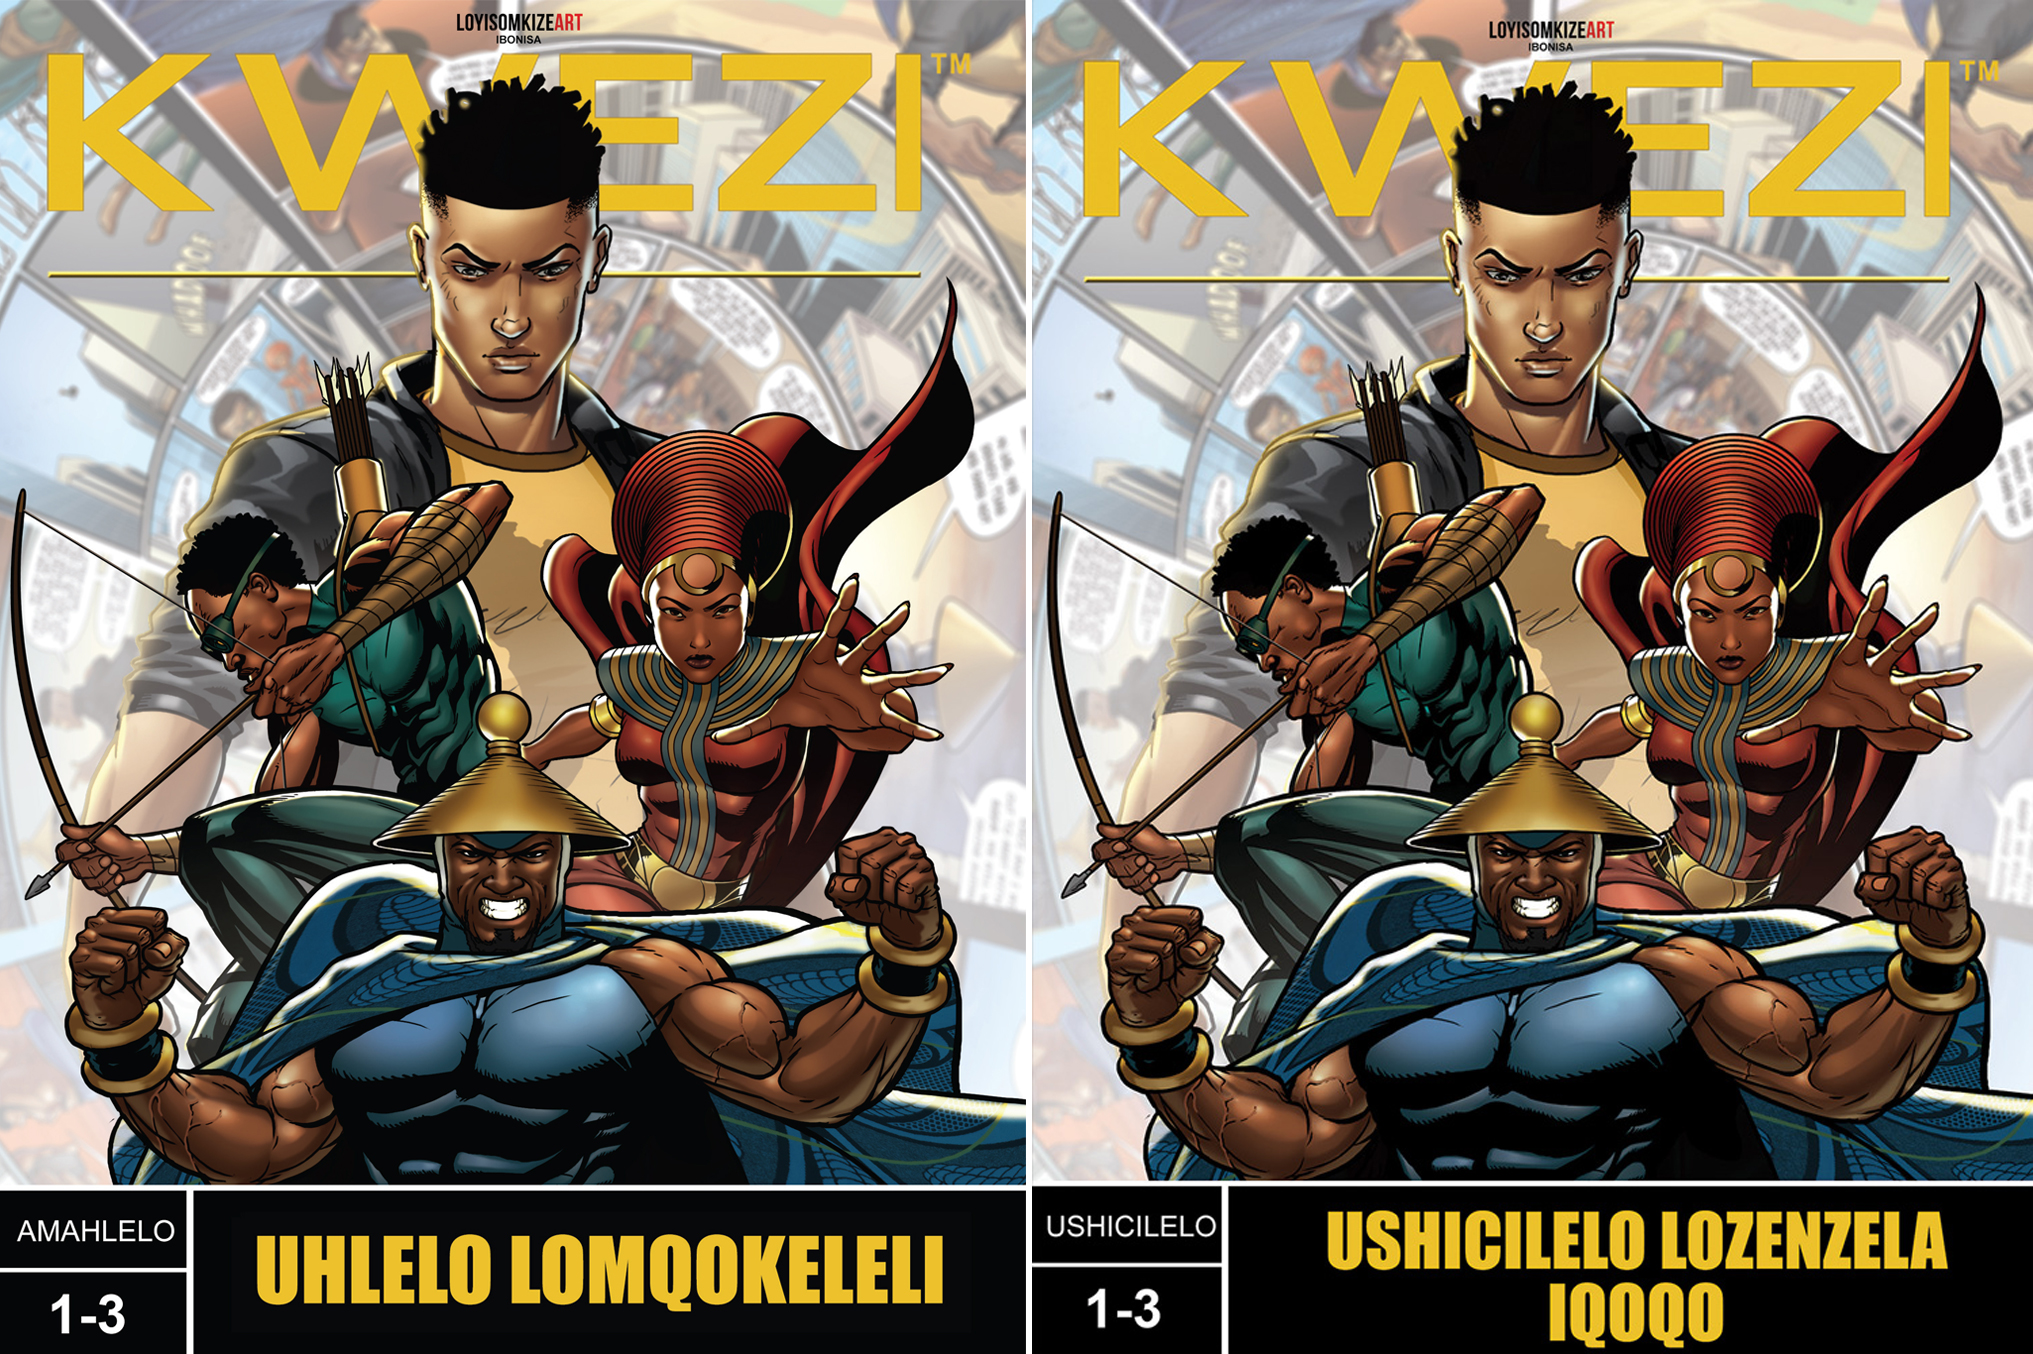 Kwezi comics to be released in Xhosa and Zulu